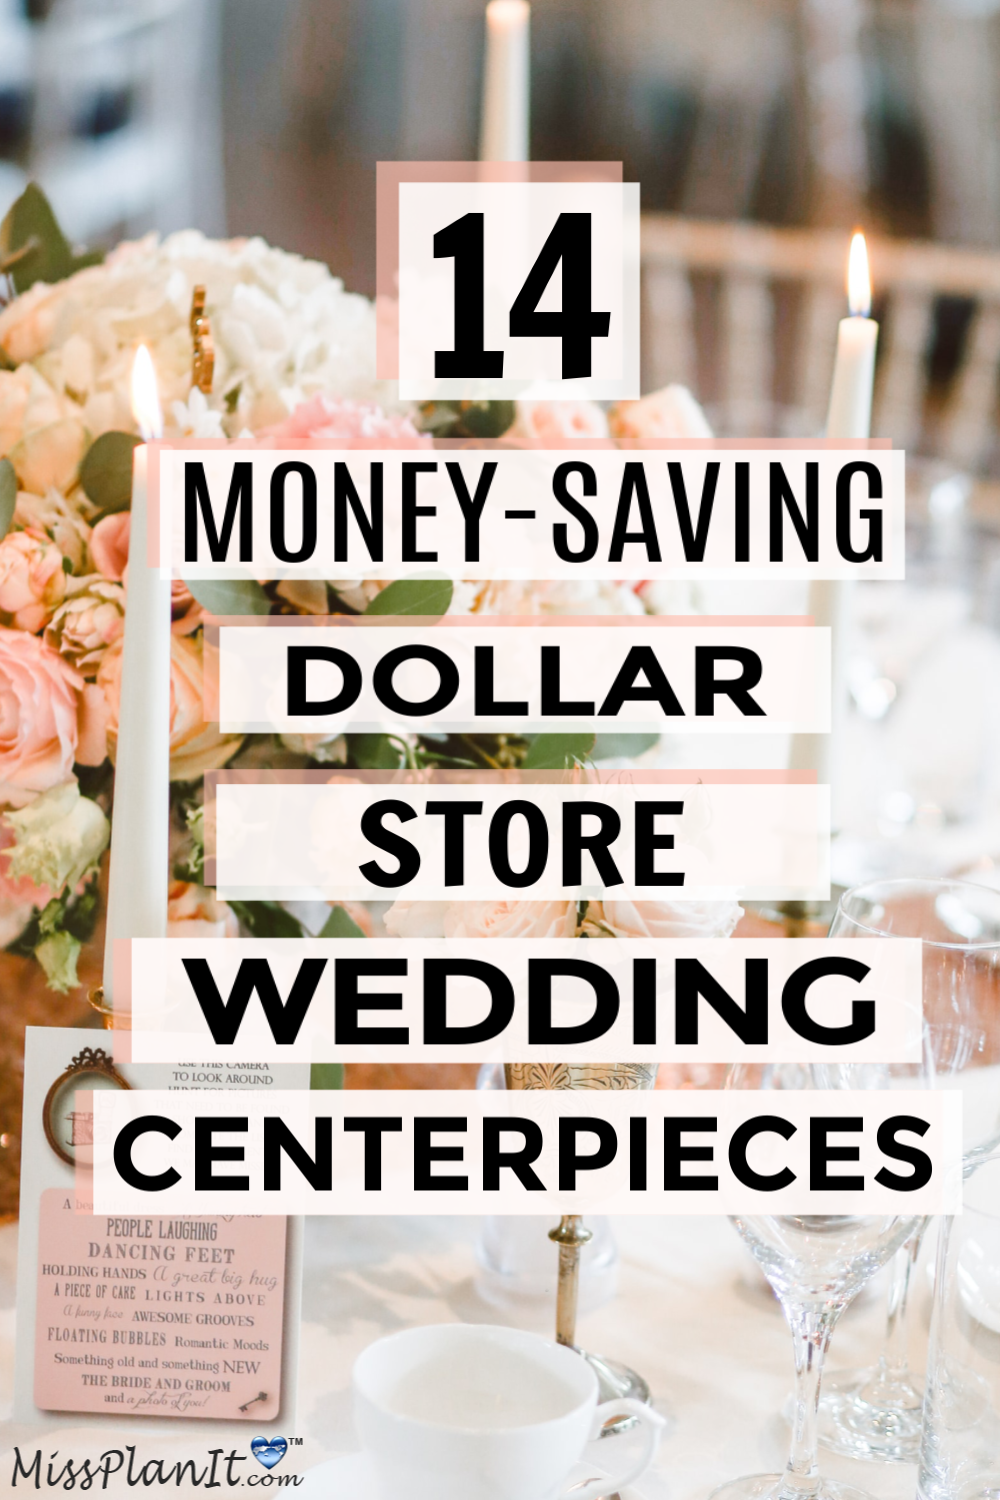 14 Dollar Tree Money Saving Products For Your Wedding Centerpieces In 2020 Diy Bridesmaid Gifts Wedding Centerpieces Diy Groomsmen Gifts